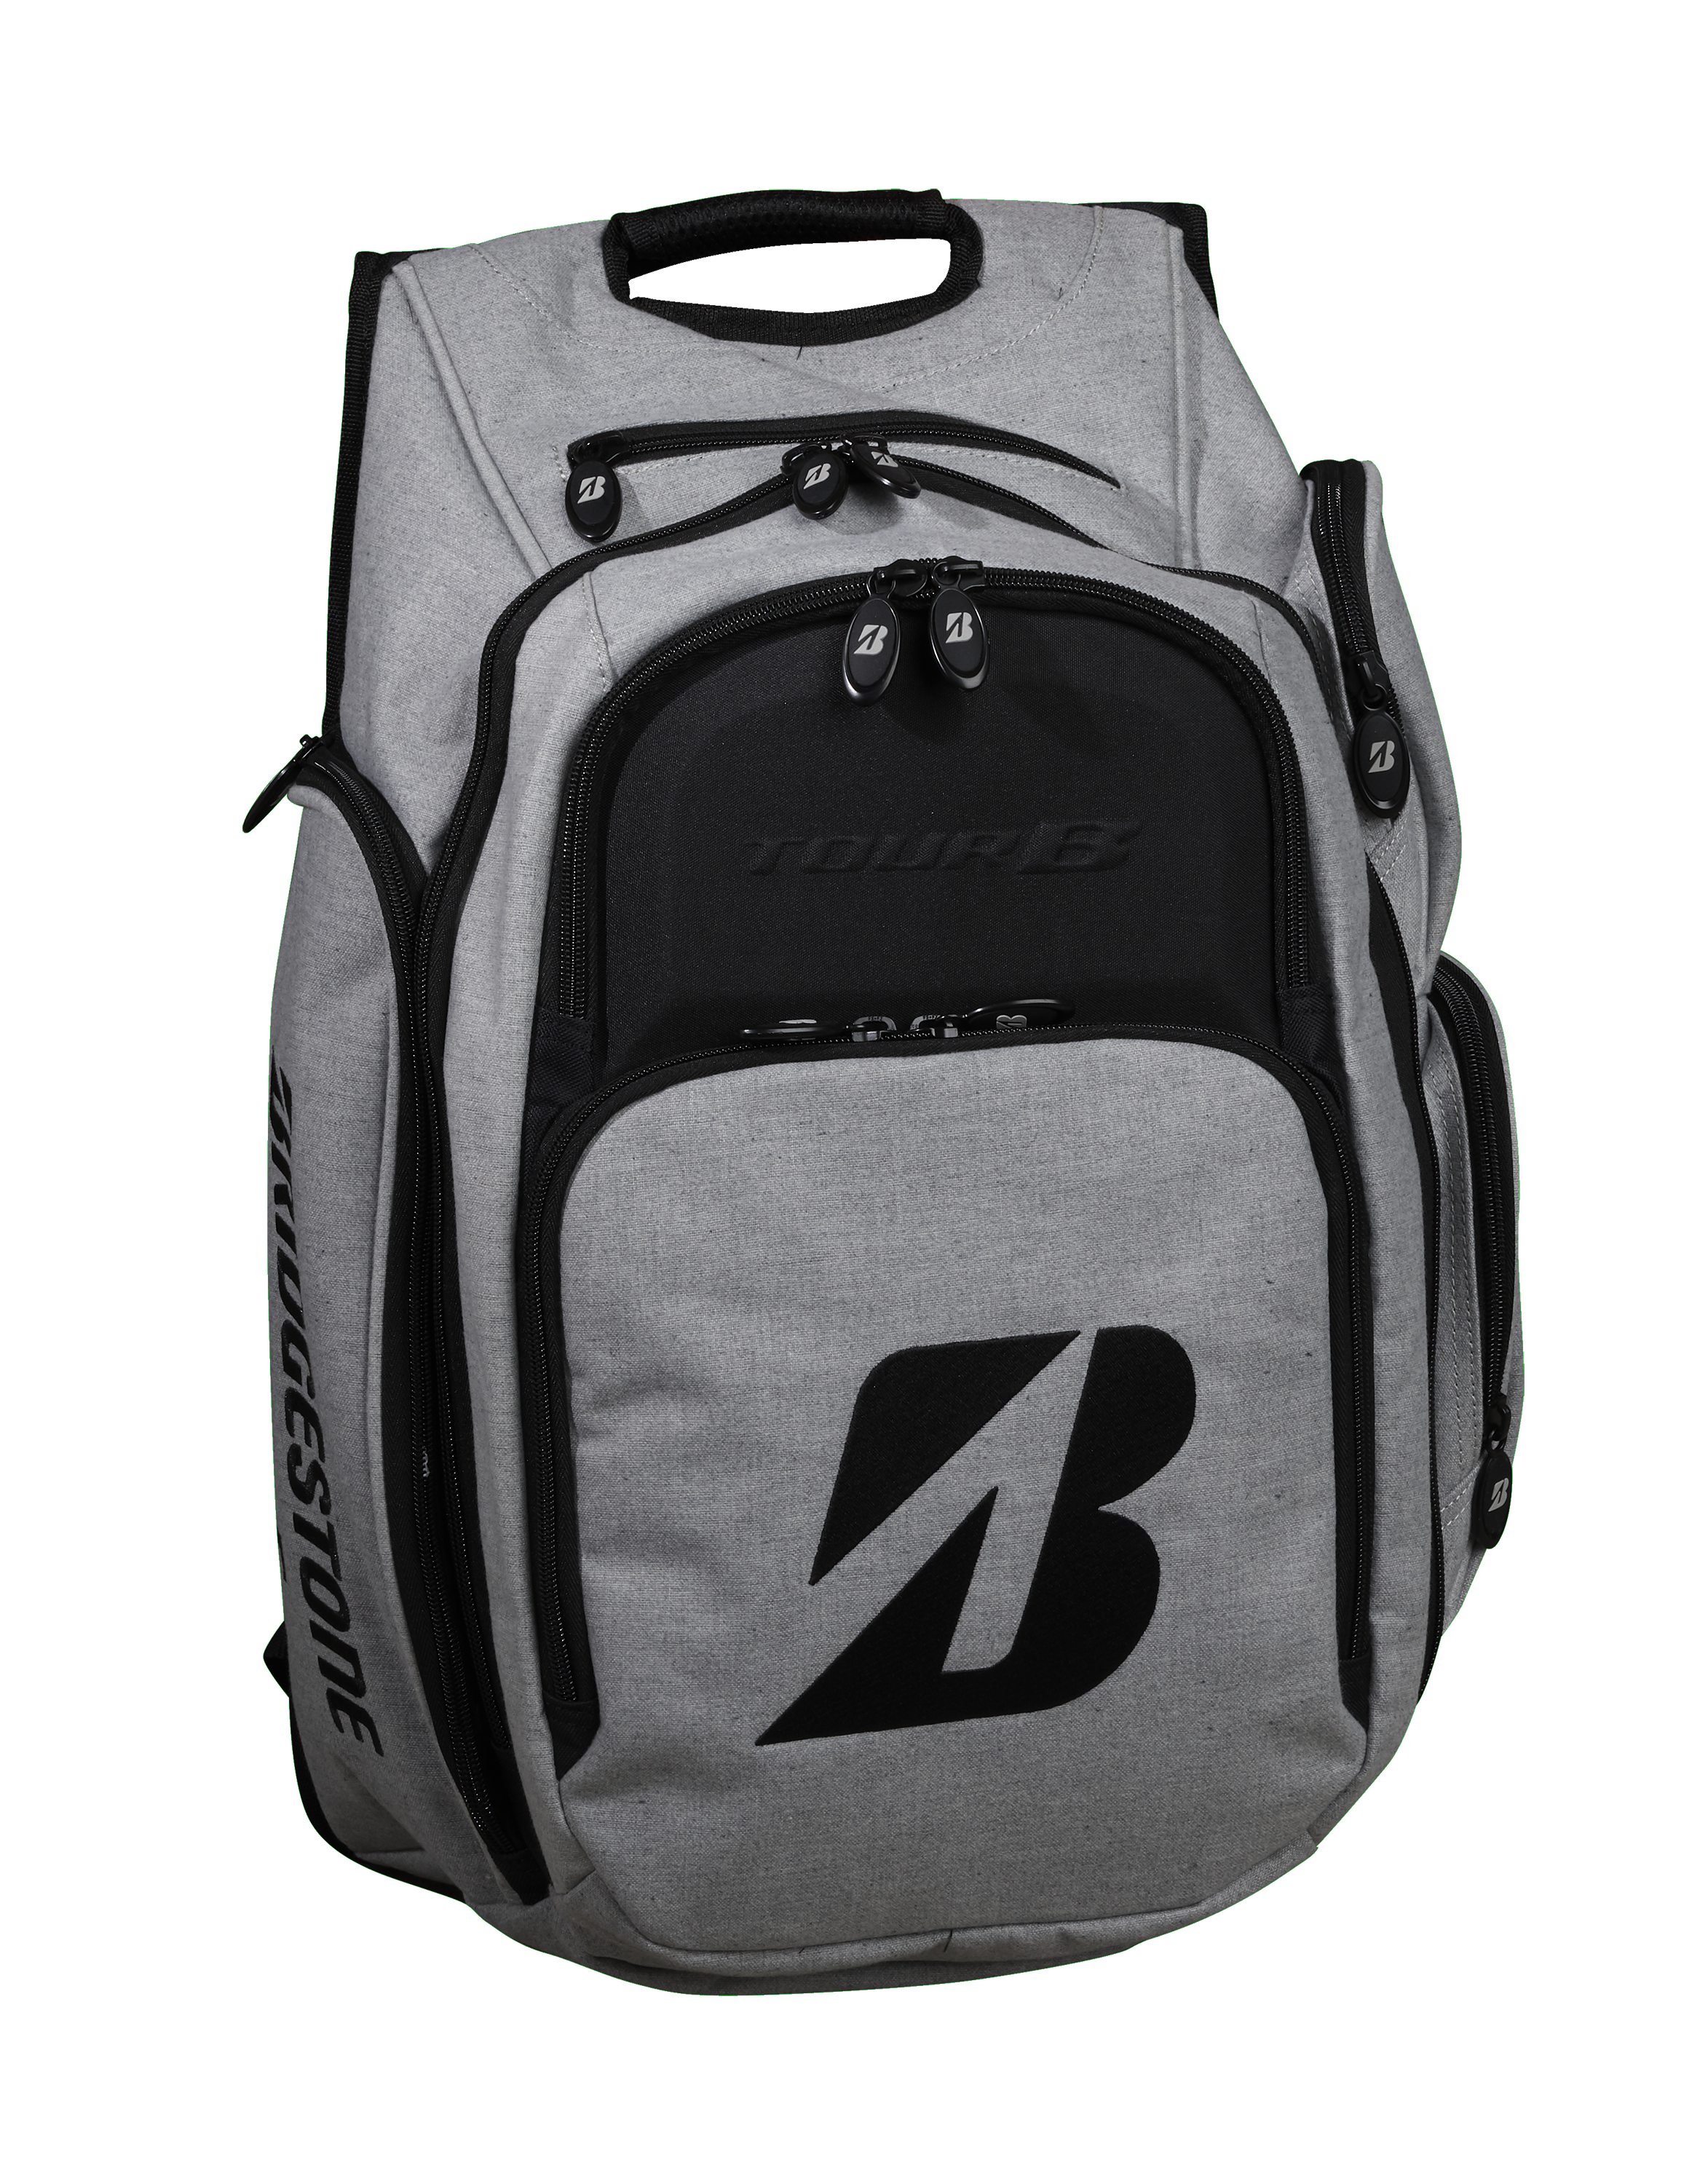 Backpack product image